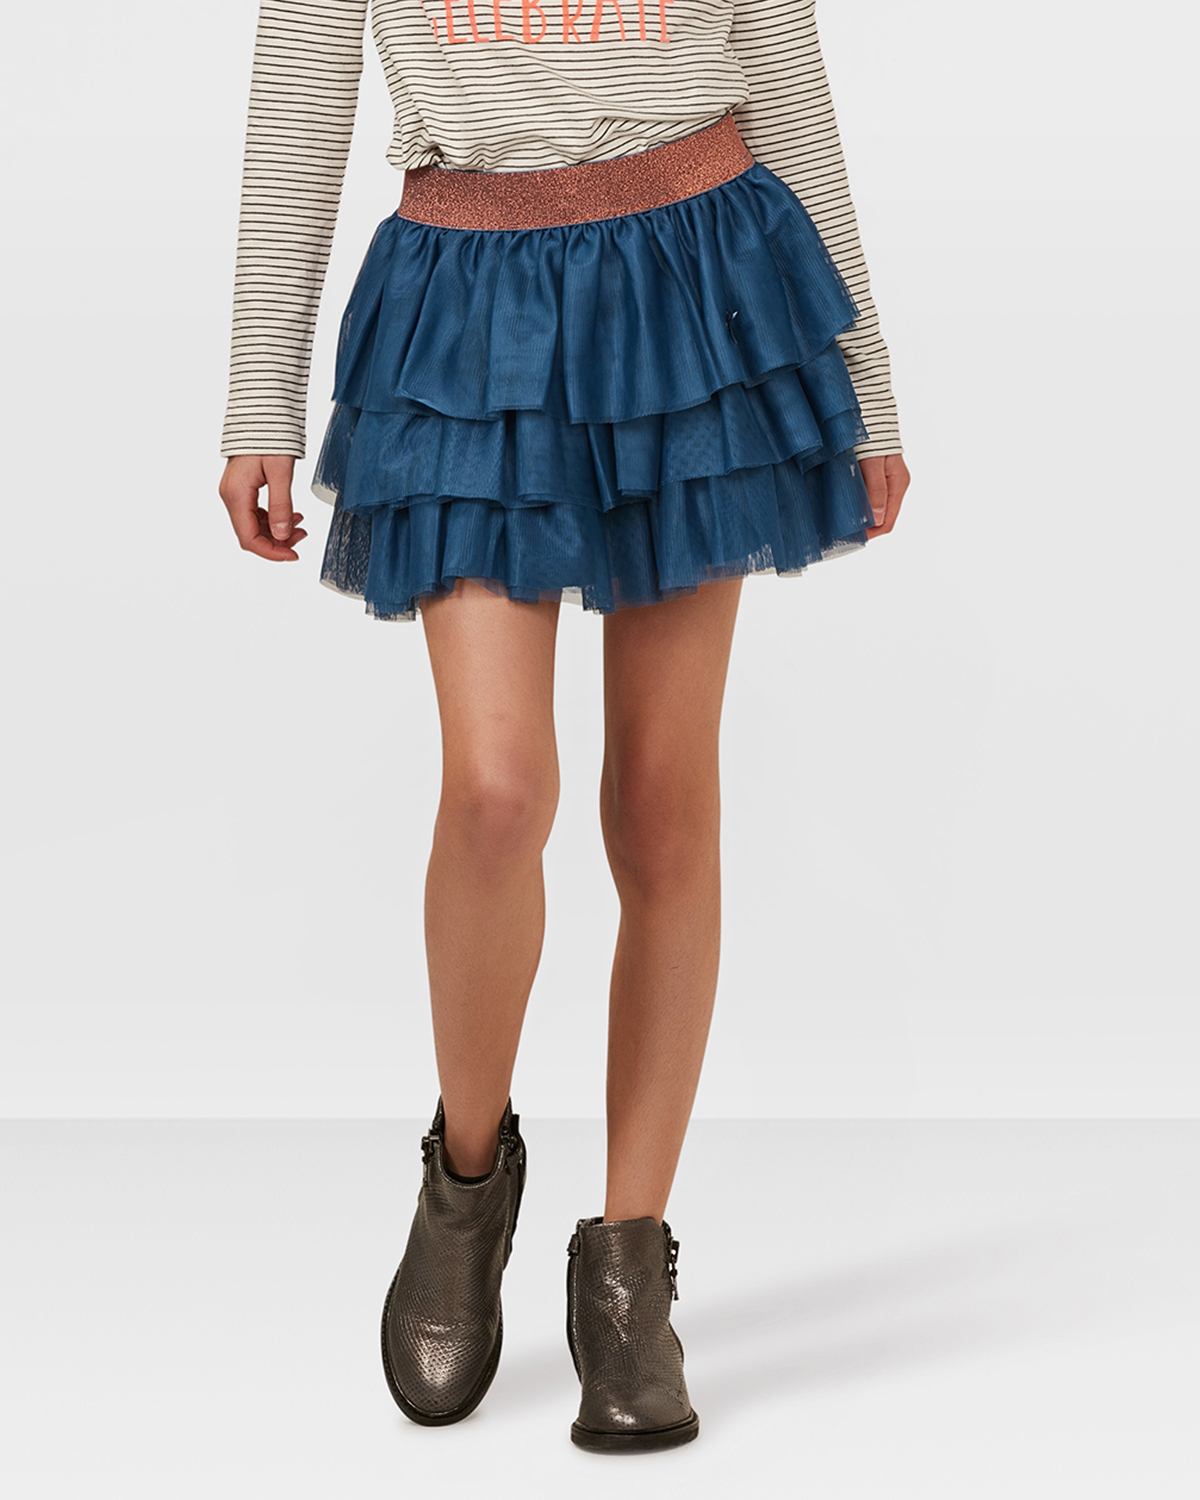 JUPE TULLE VOLANT FILLE   79571647 - WE Fashion 9d3a44256b52